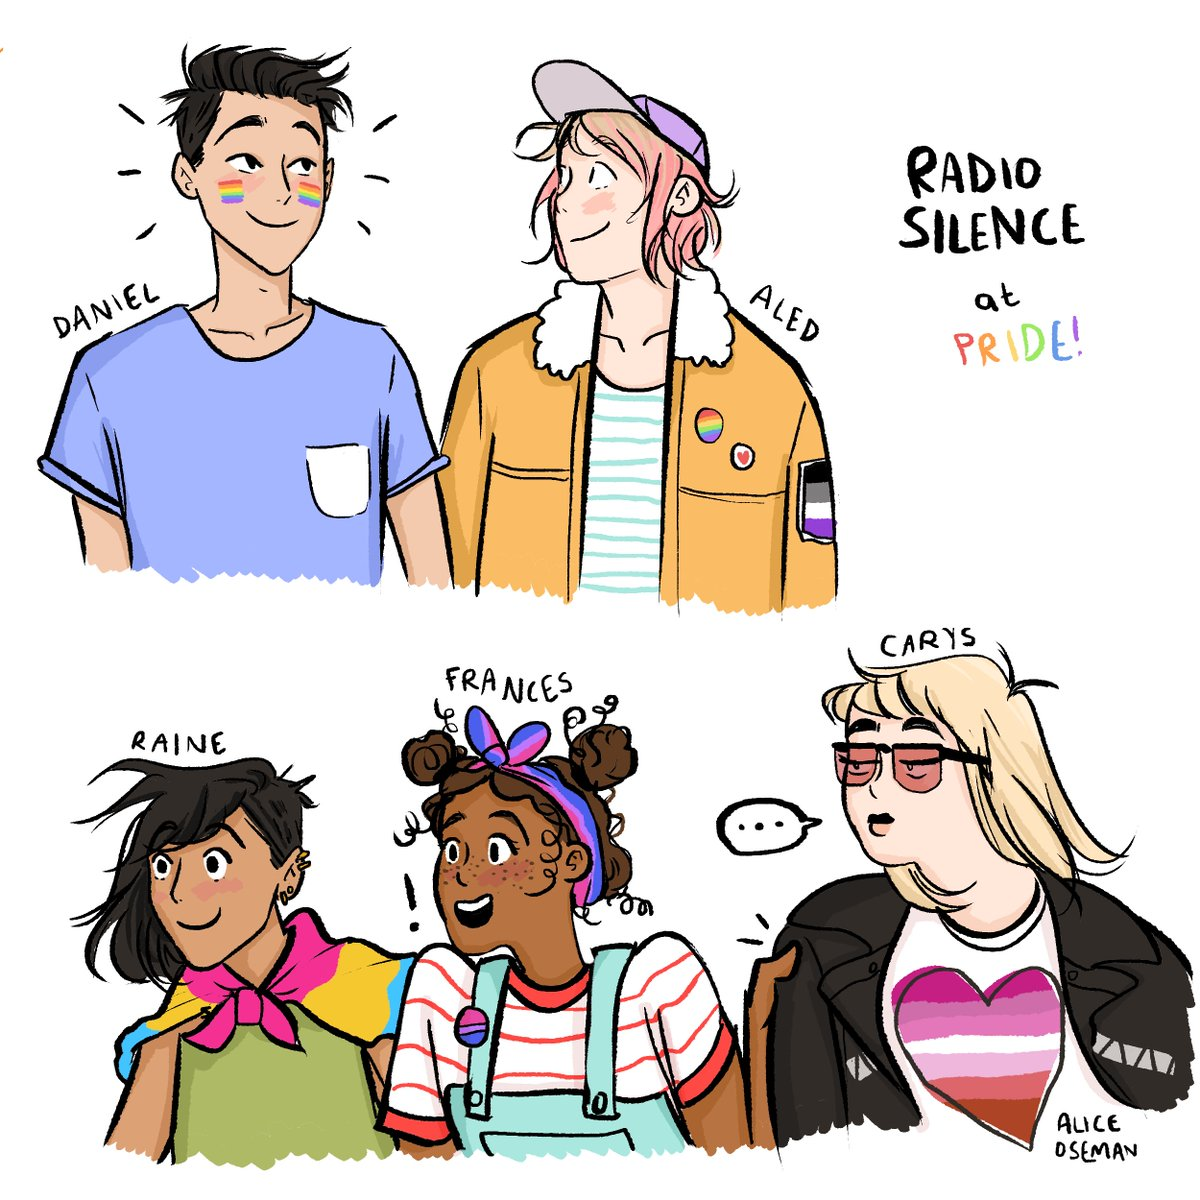 "Alice Oseman on Twitter: ""with minutes to spare, here's a final Pride Month  drawing - the Radio Silence five at Pride together! Daniel wasn't sure  whether he wanted to go because he"